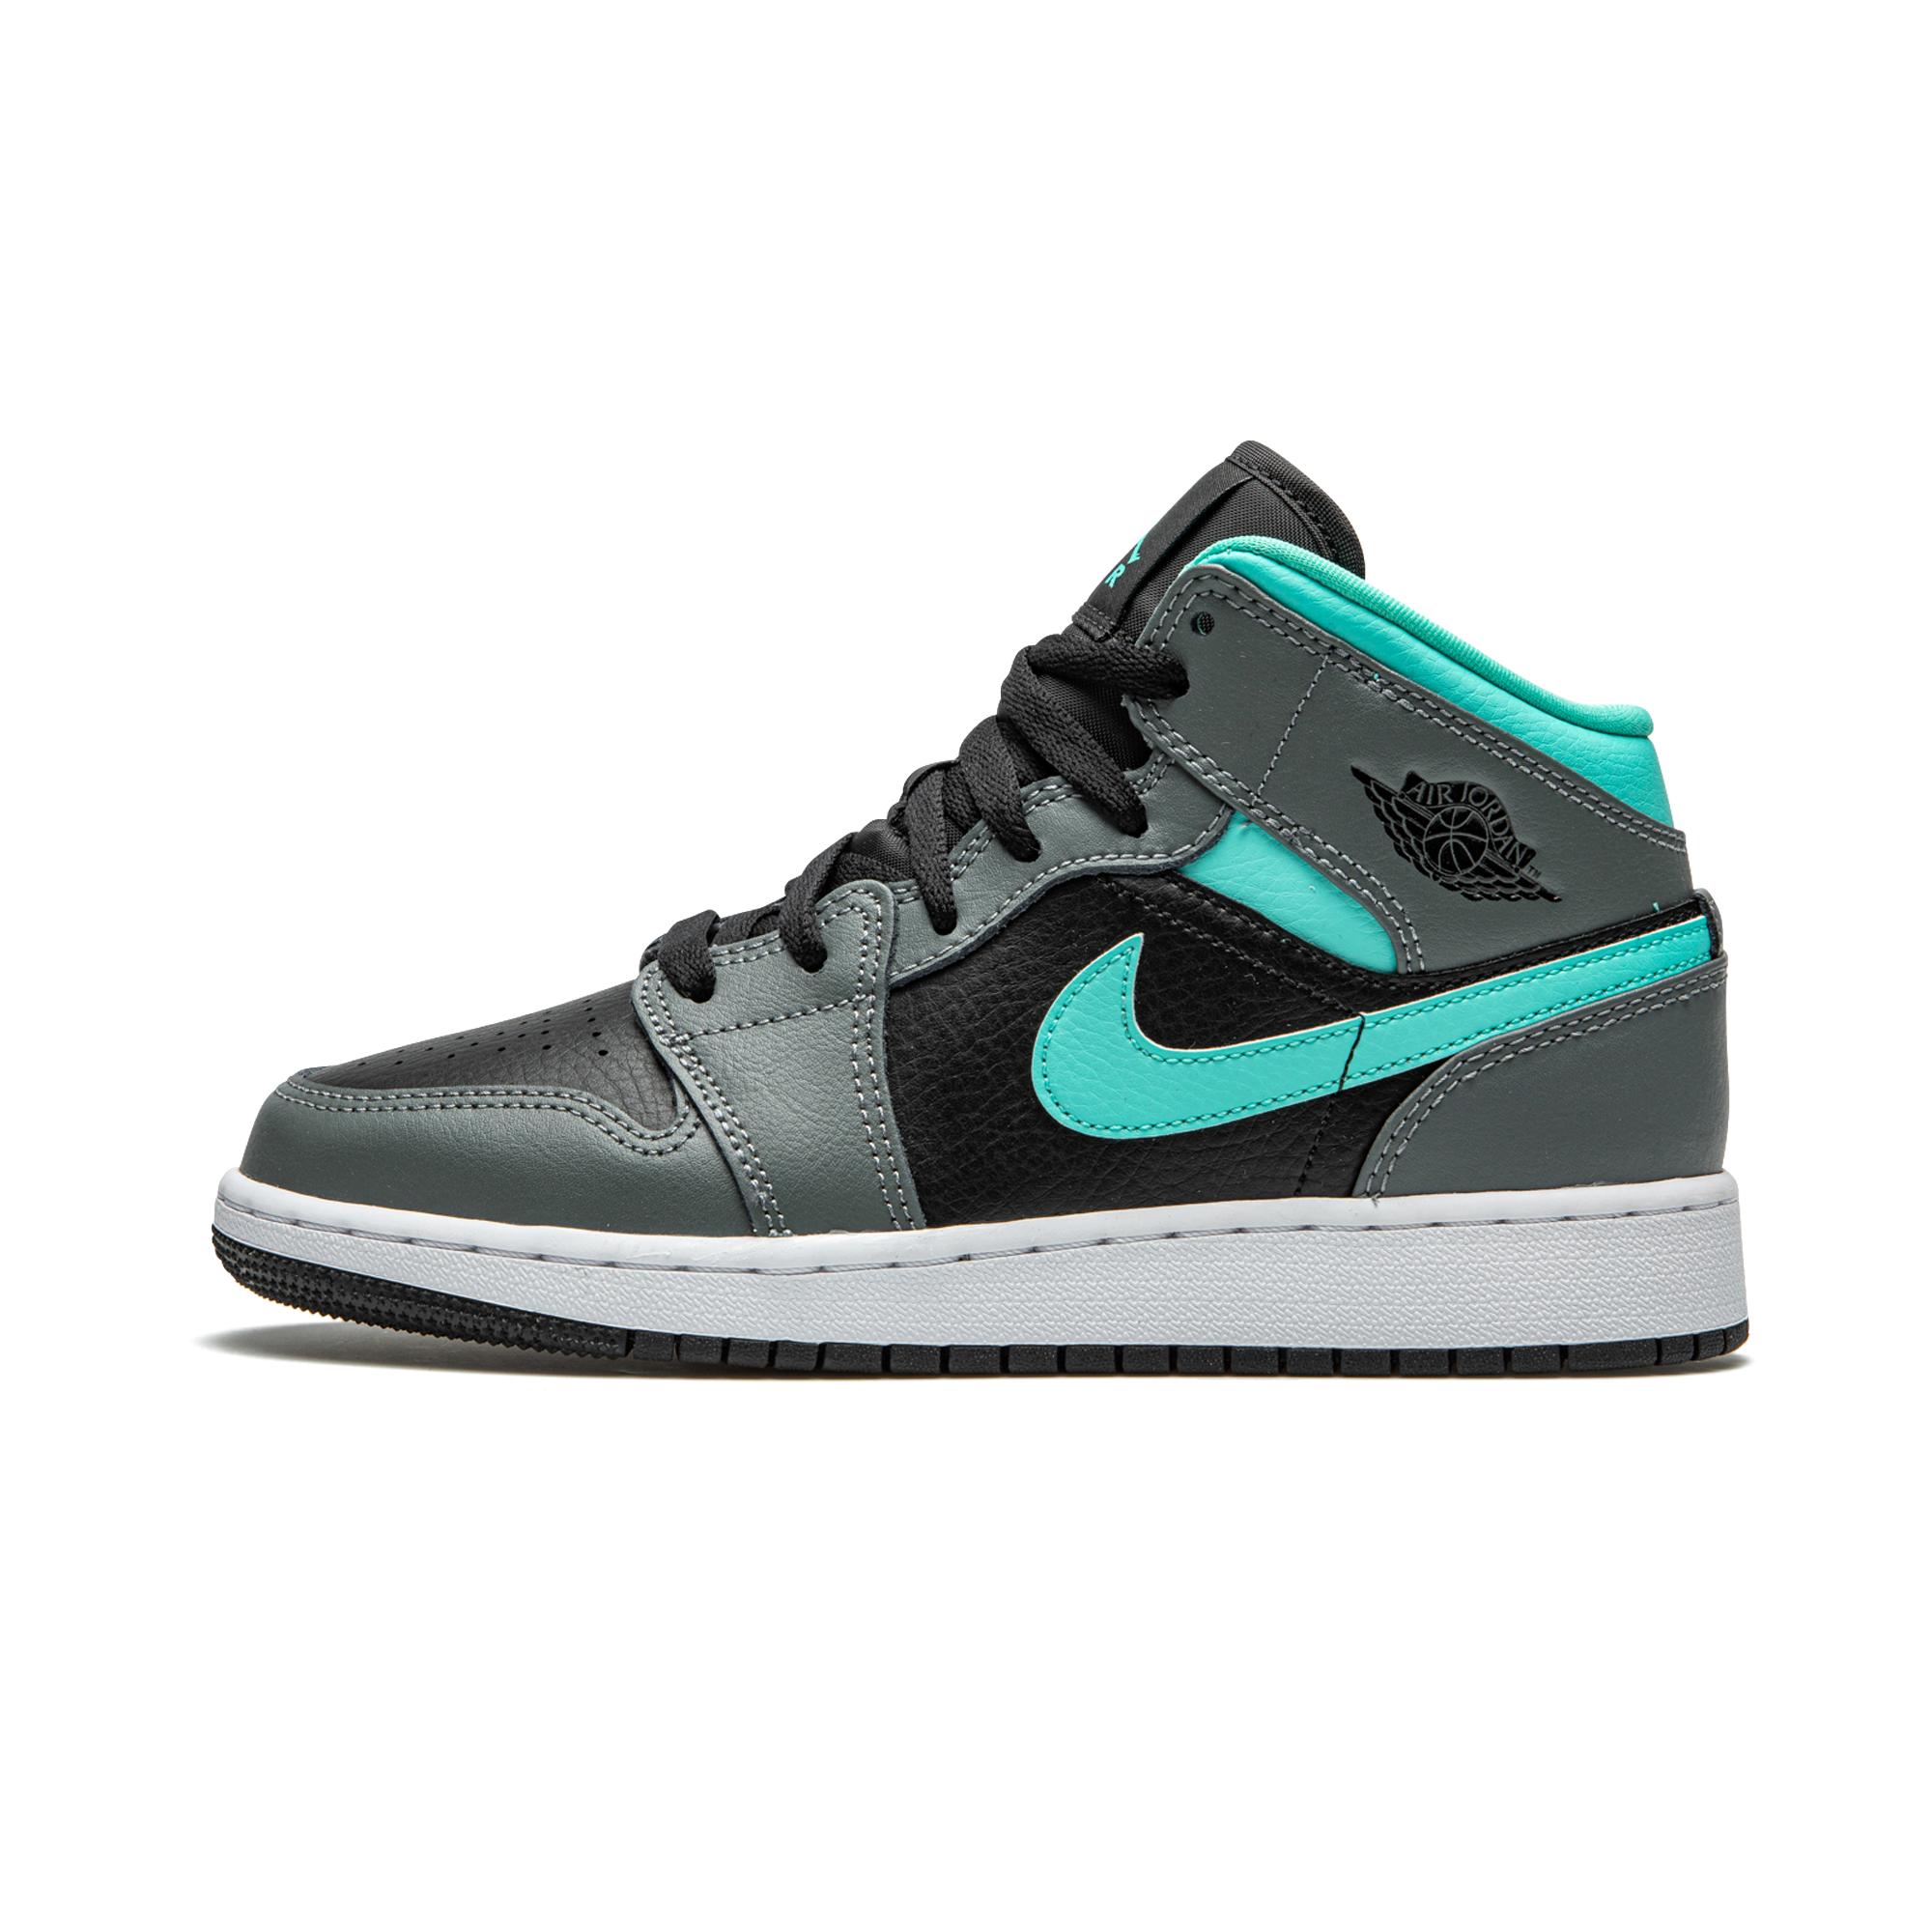 Air Jordan 1 MID - Aqua Womens (GS)